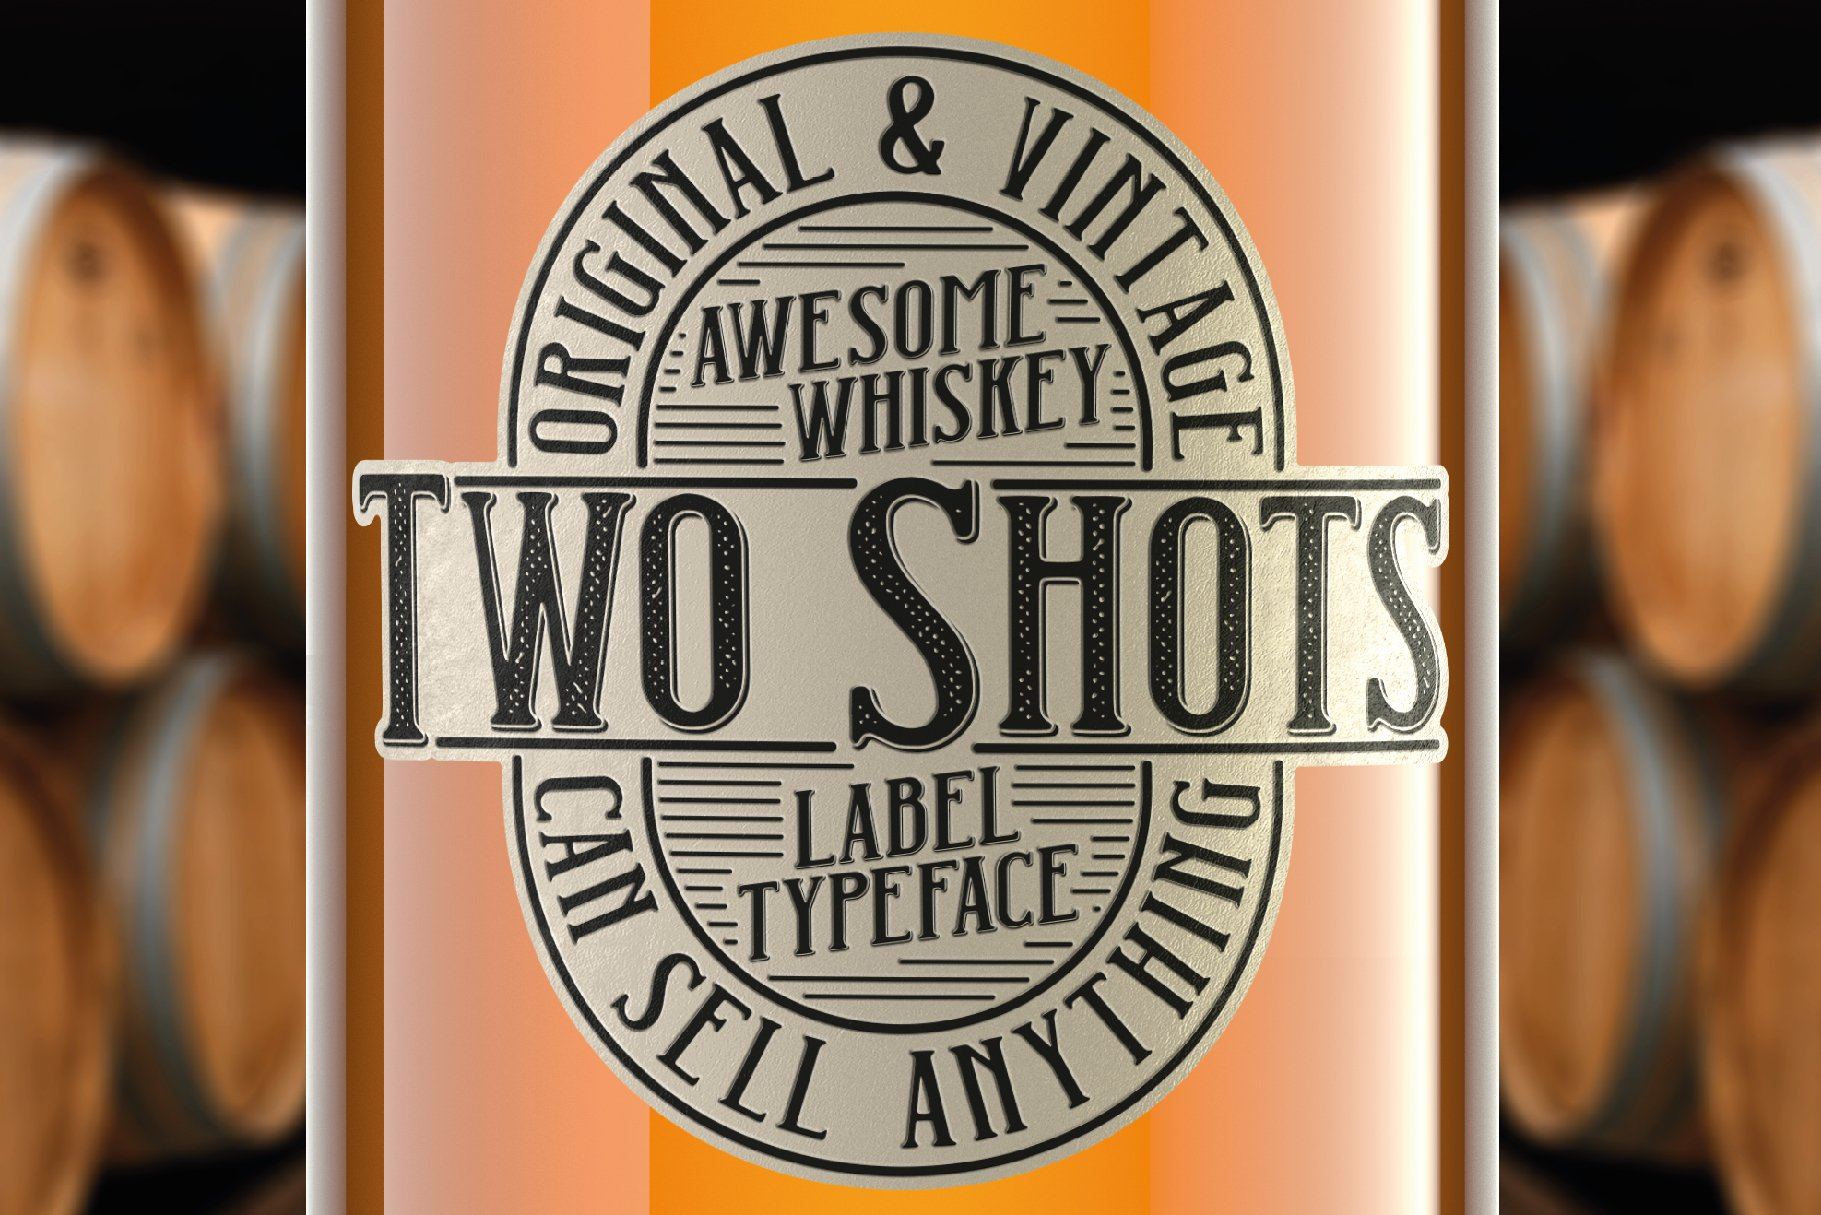 Two Shots label font example image 1